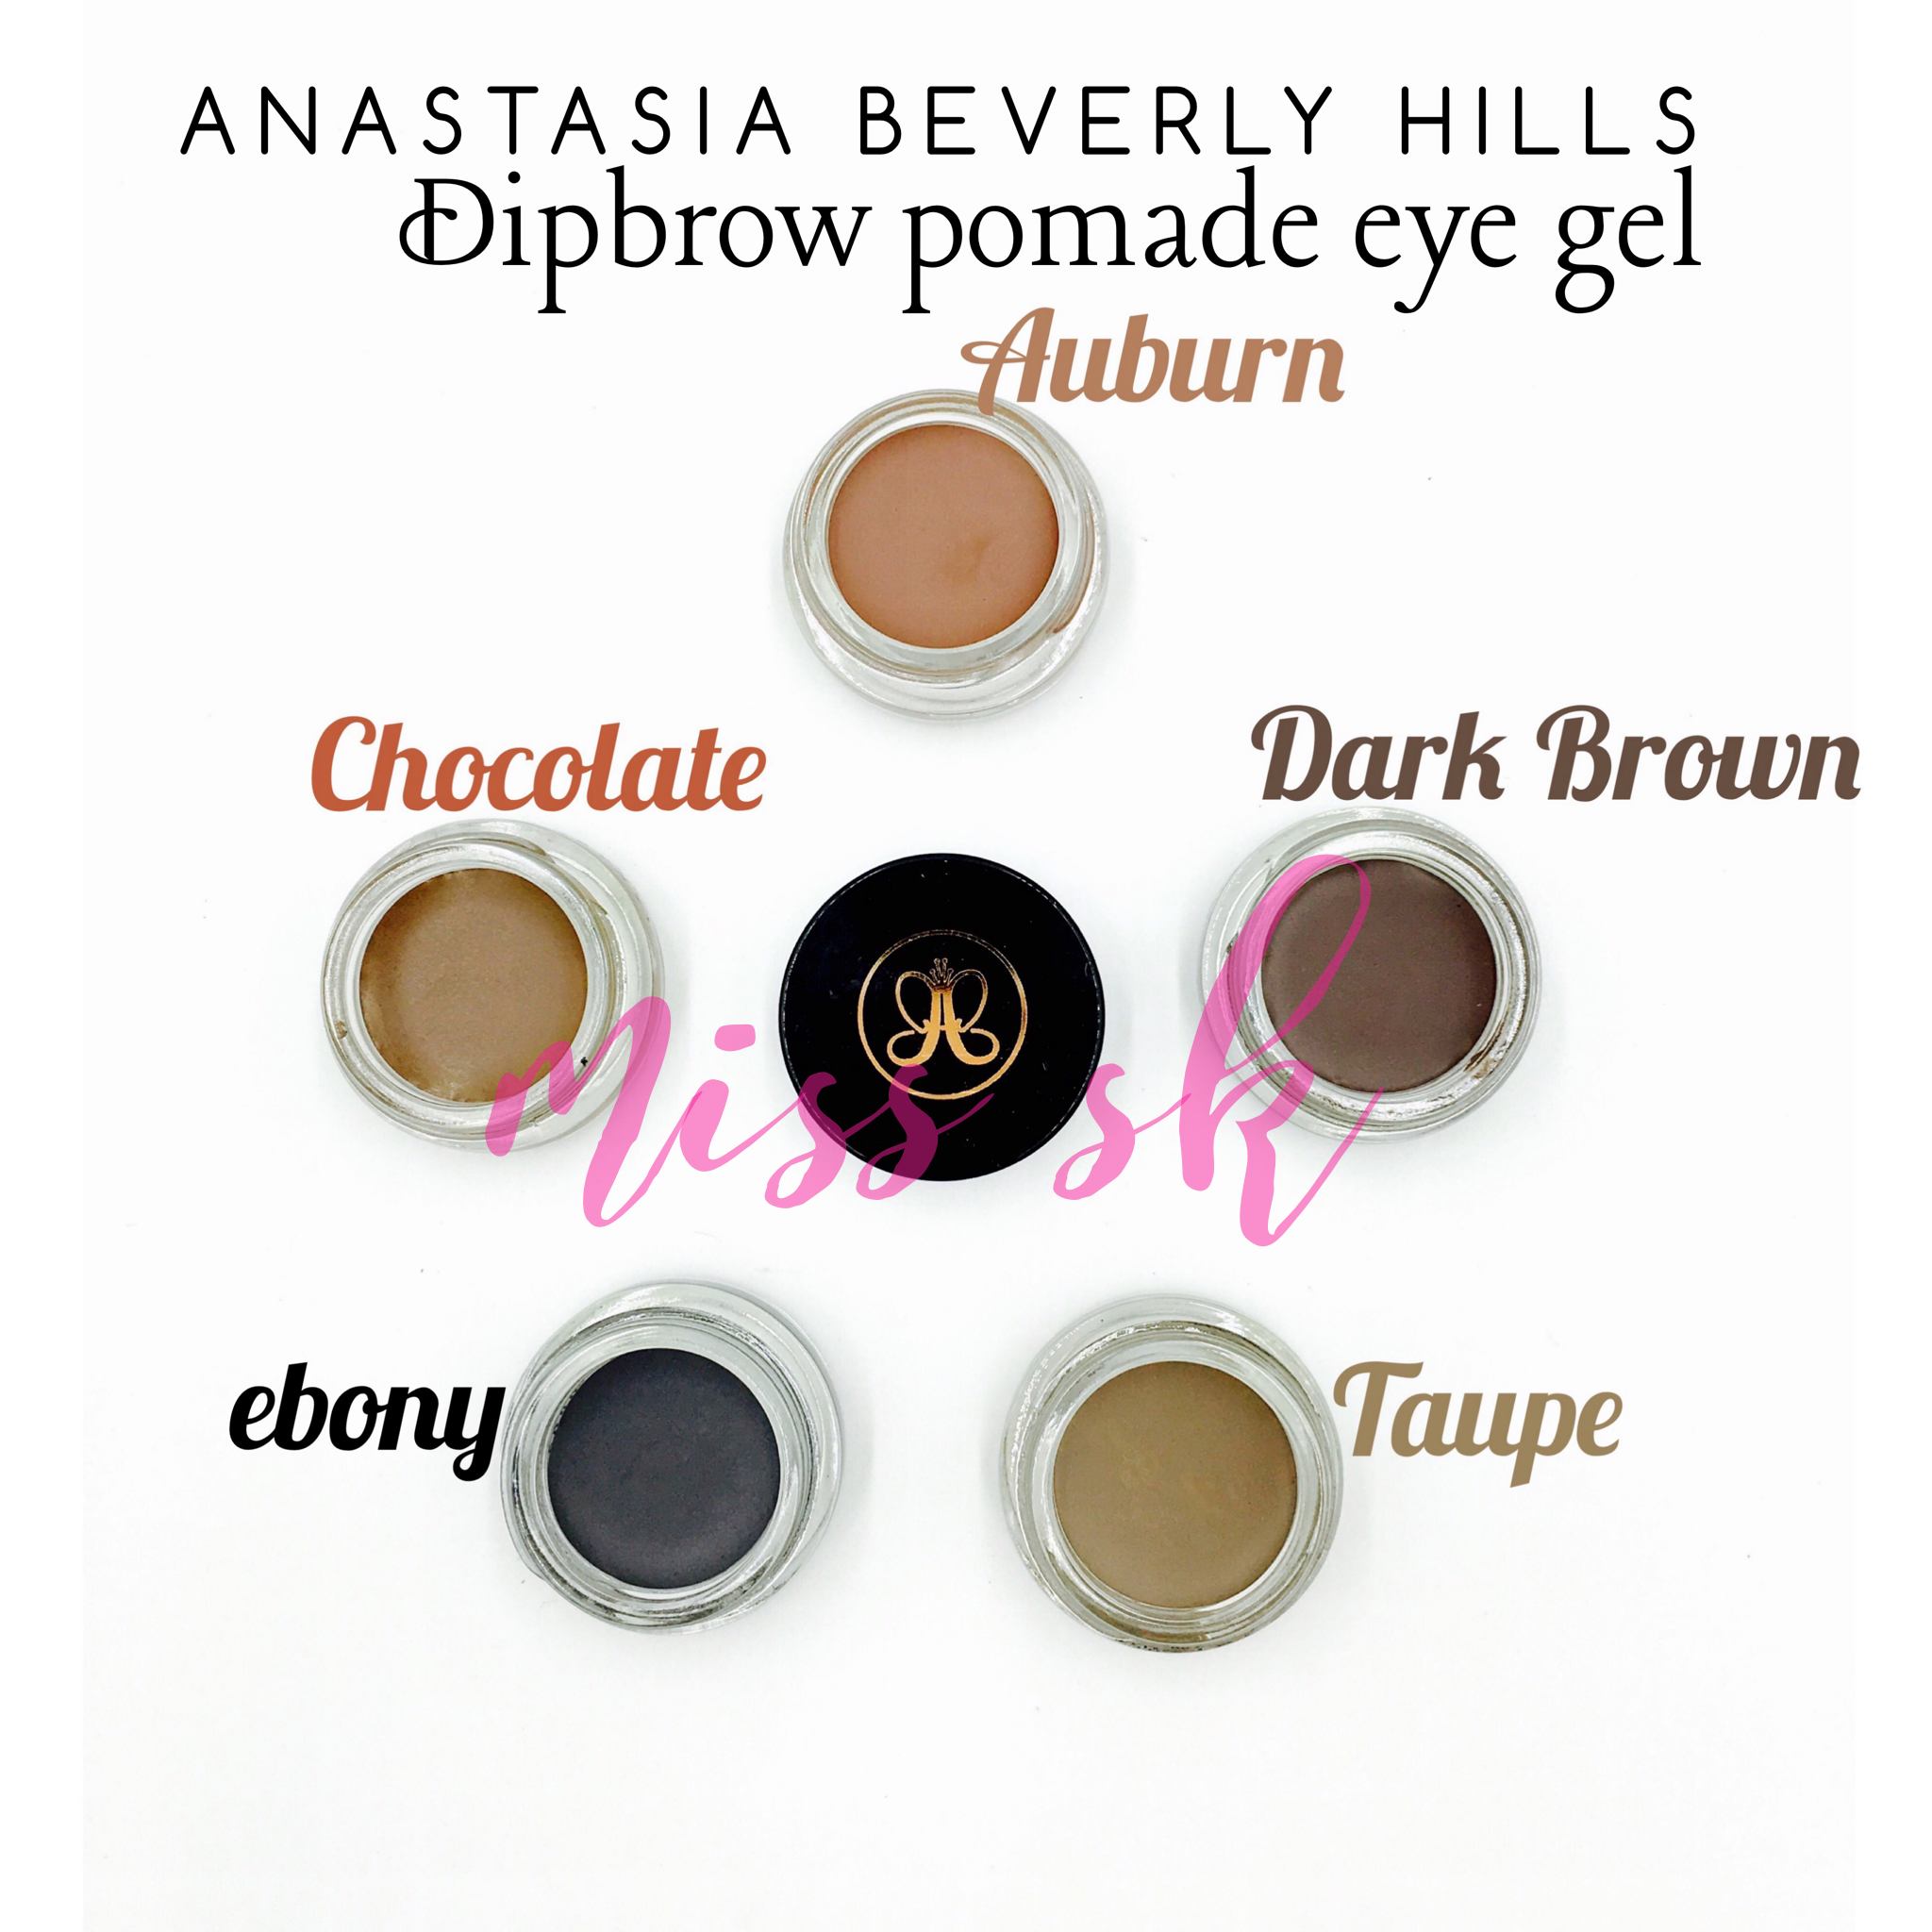 Anastasia beverly hills discount coupon